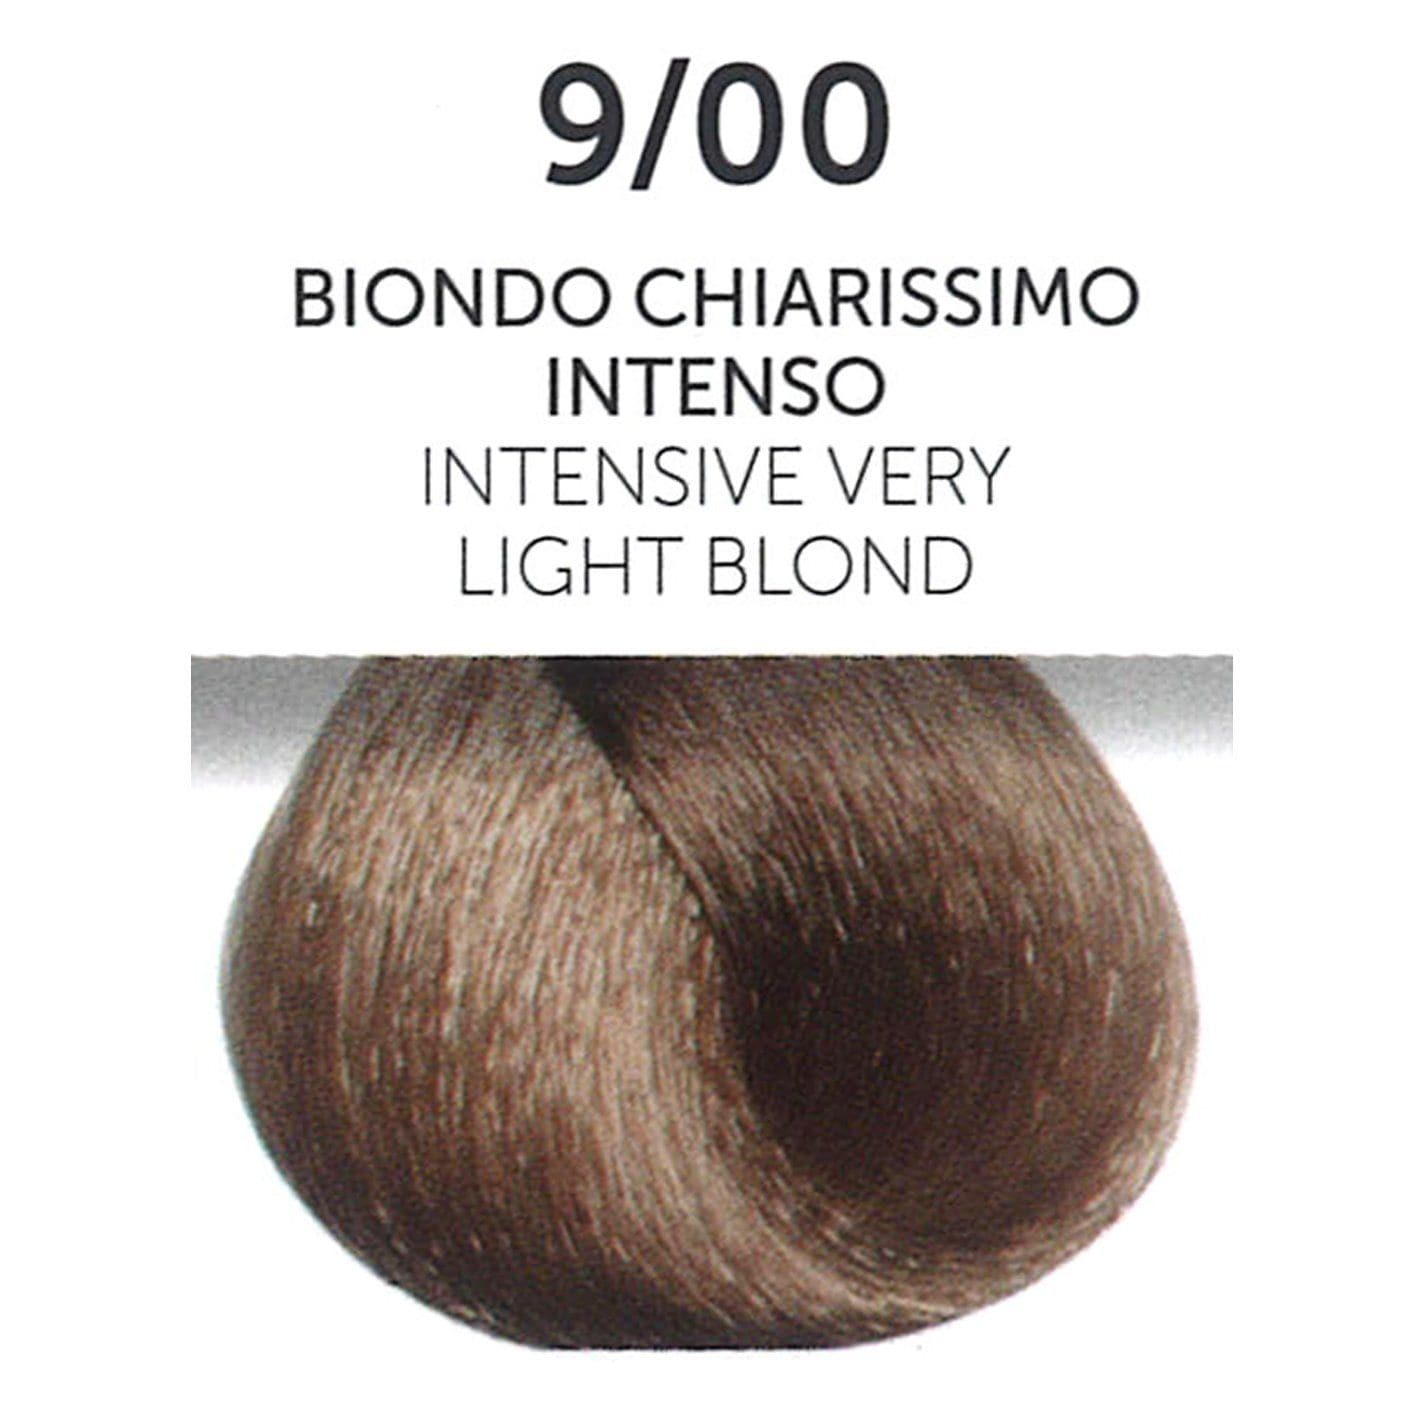 9/00 Intensive Very Light Blond | Permanent Hair Color | Perlacolor | OYSTER | SHSalons.com